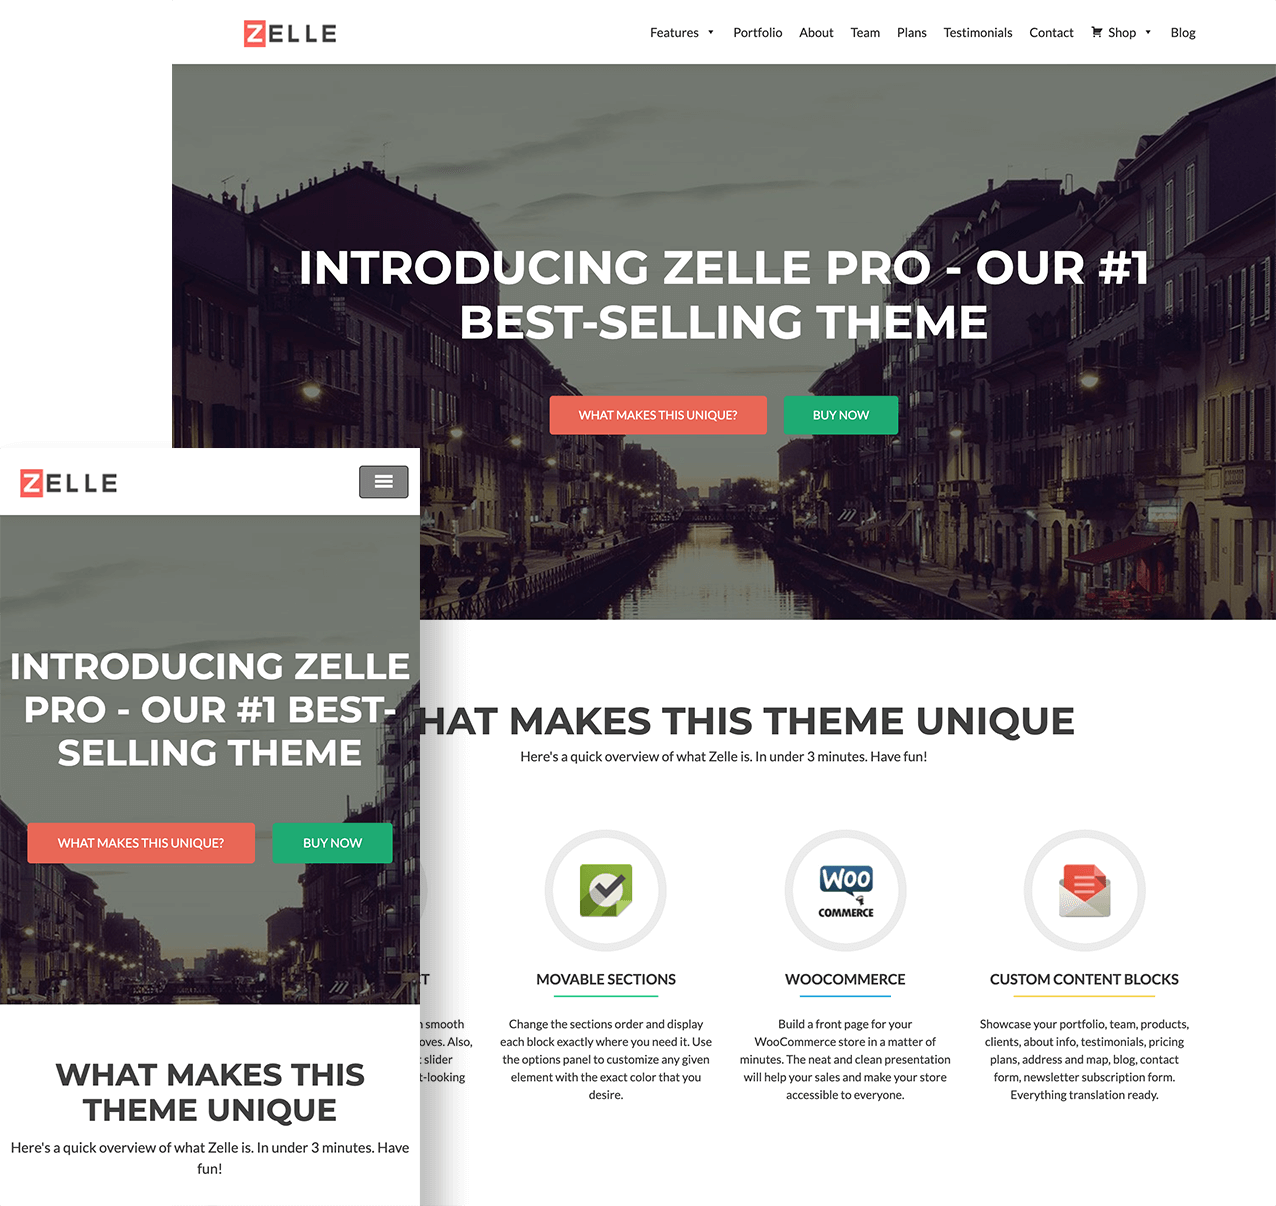 Zelle PRO Featured Image